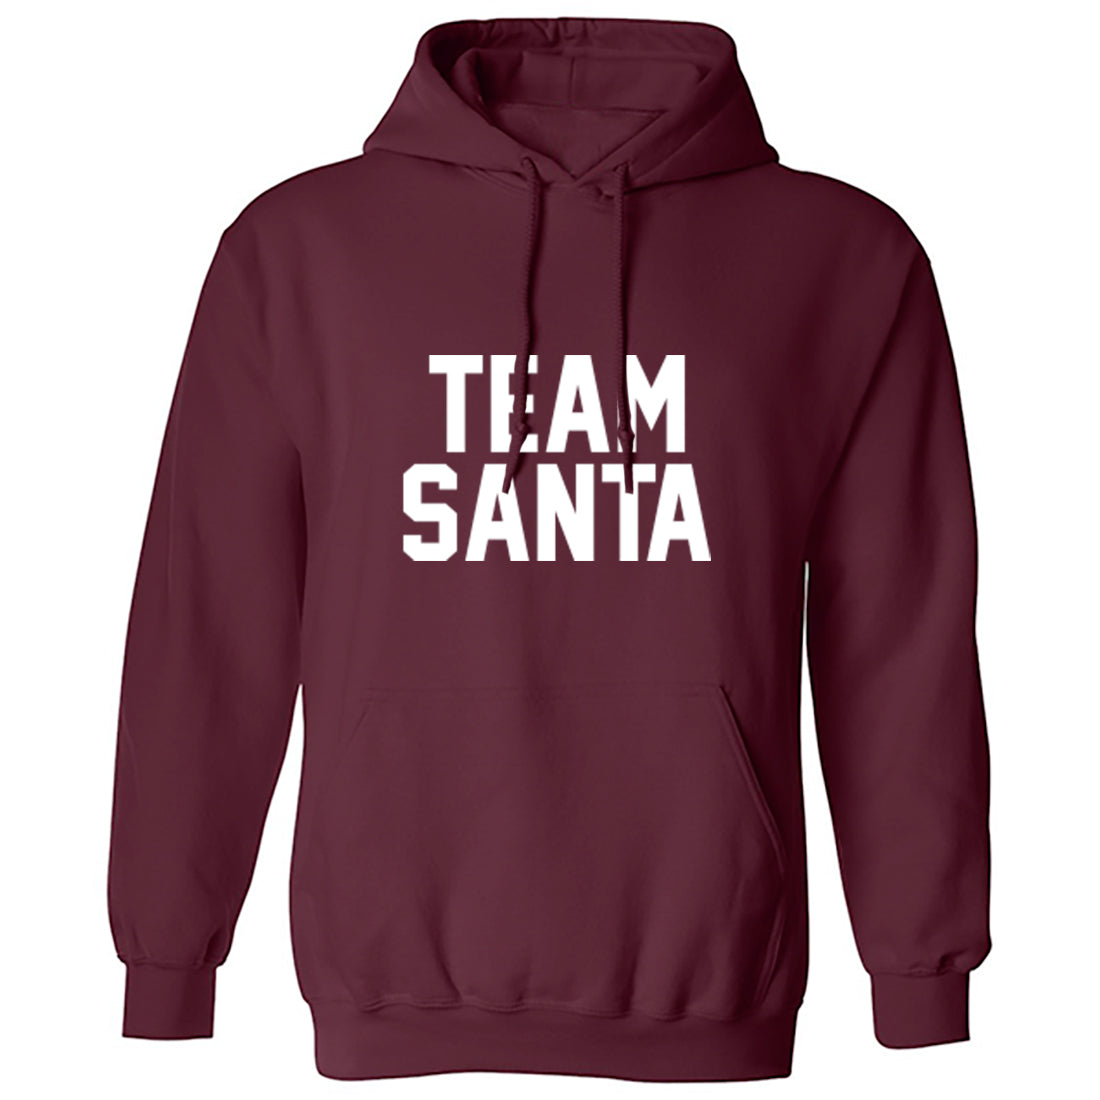 Team Santa Unisex Hoodie K1355 - Illustrated Identity Ltd.